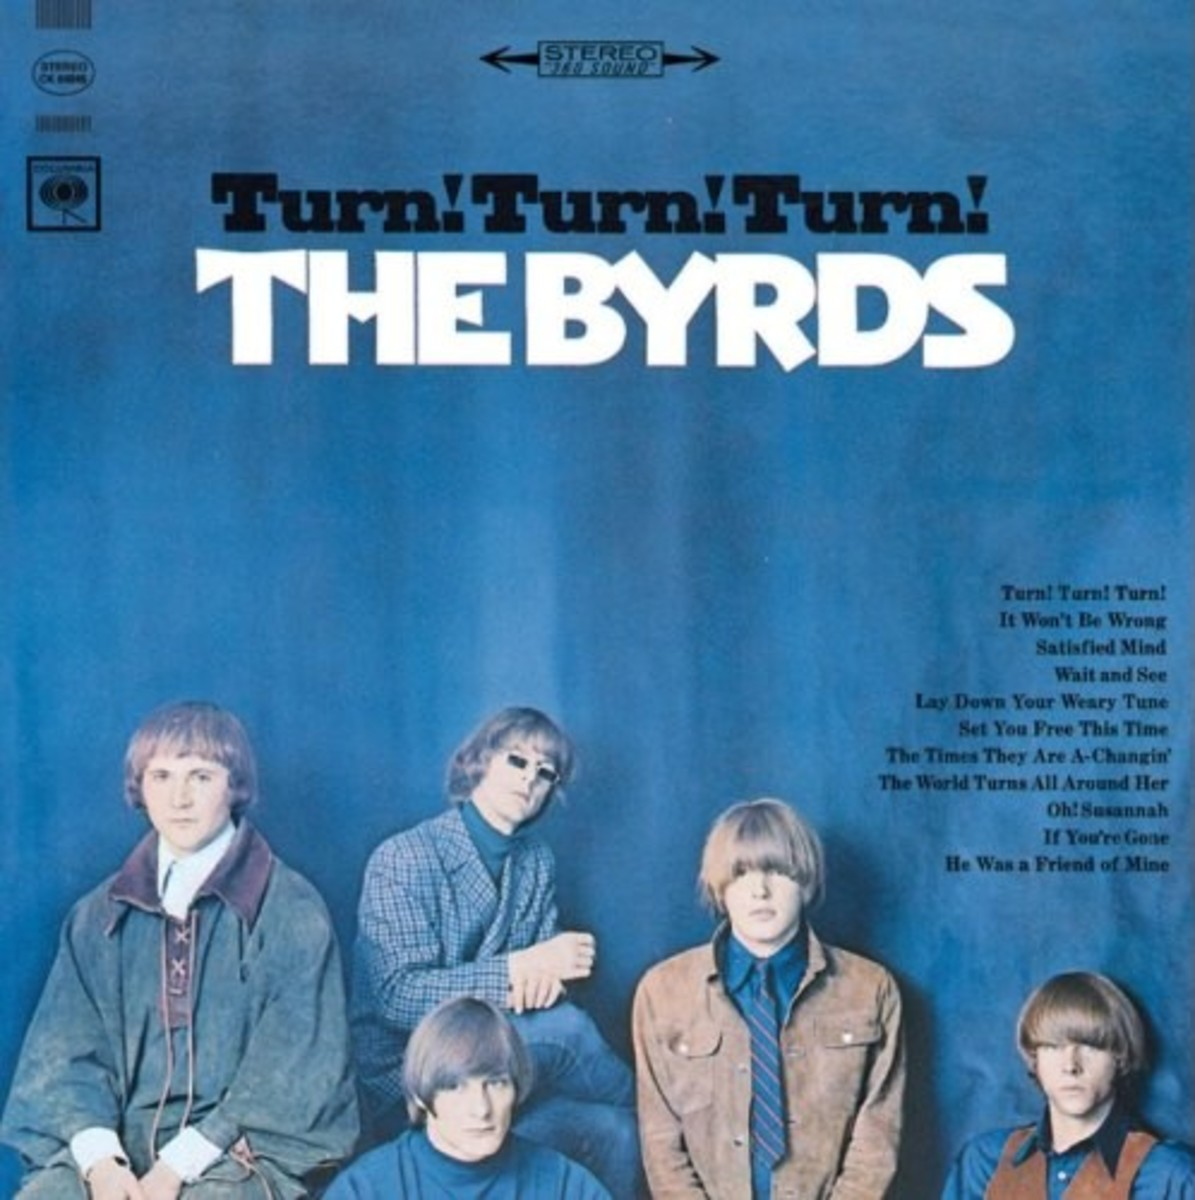 The Byrds Turn Turn Turn Album Cover Photo